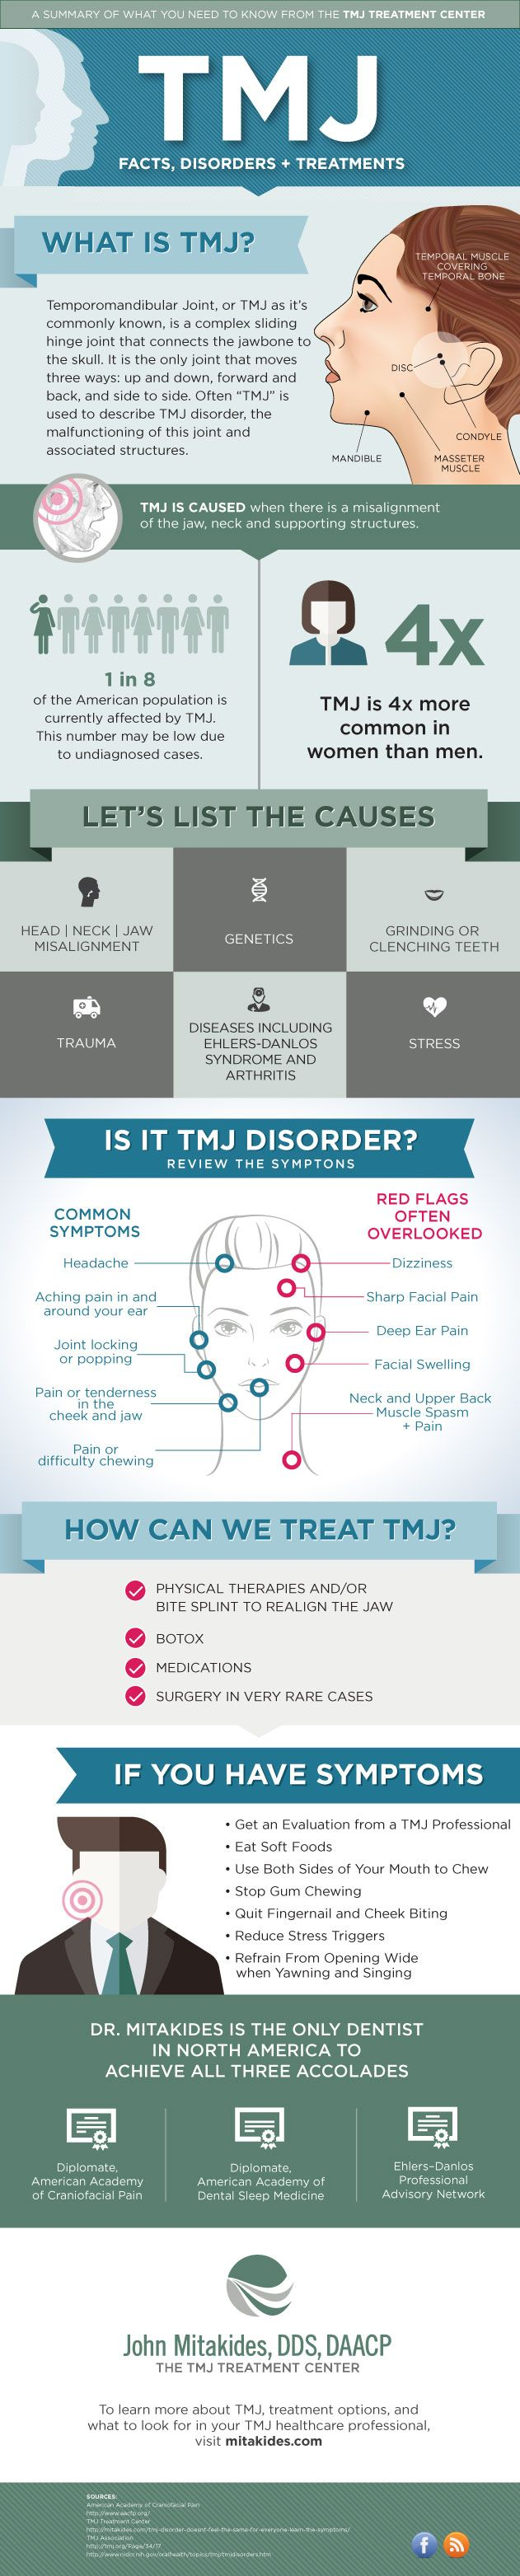 What dental professionals need to know about TMJ: An infographic